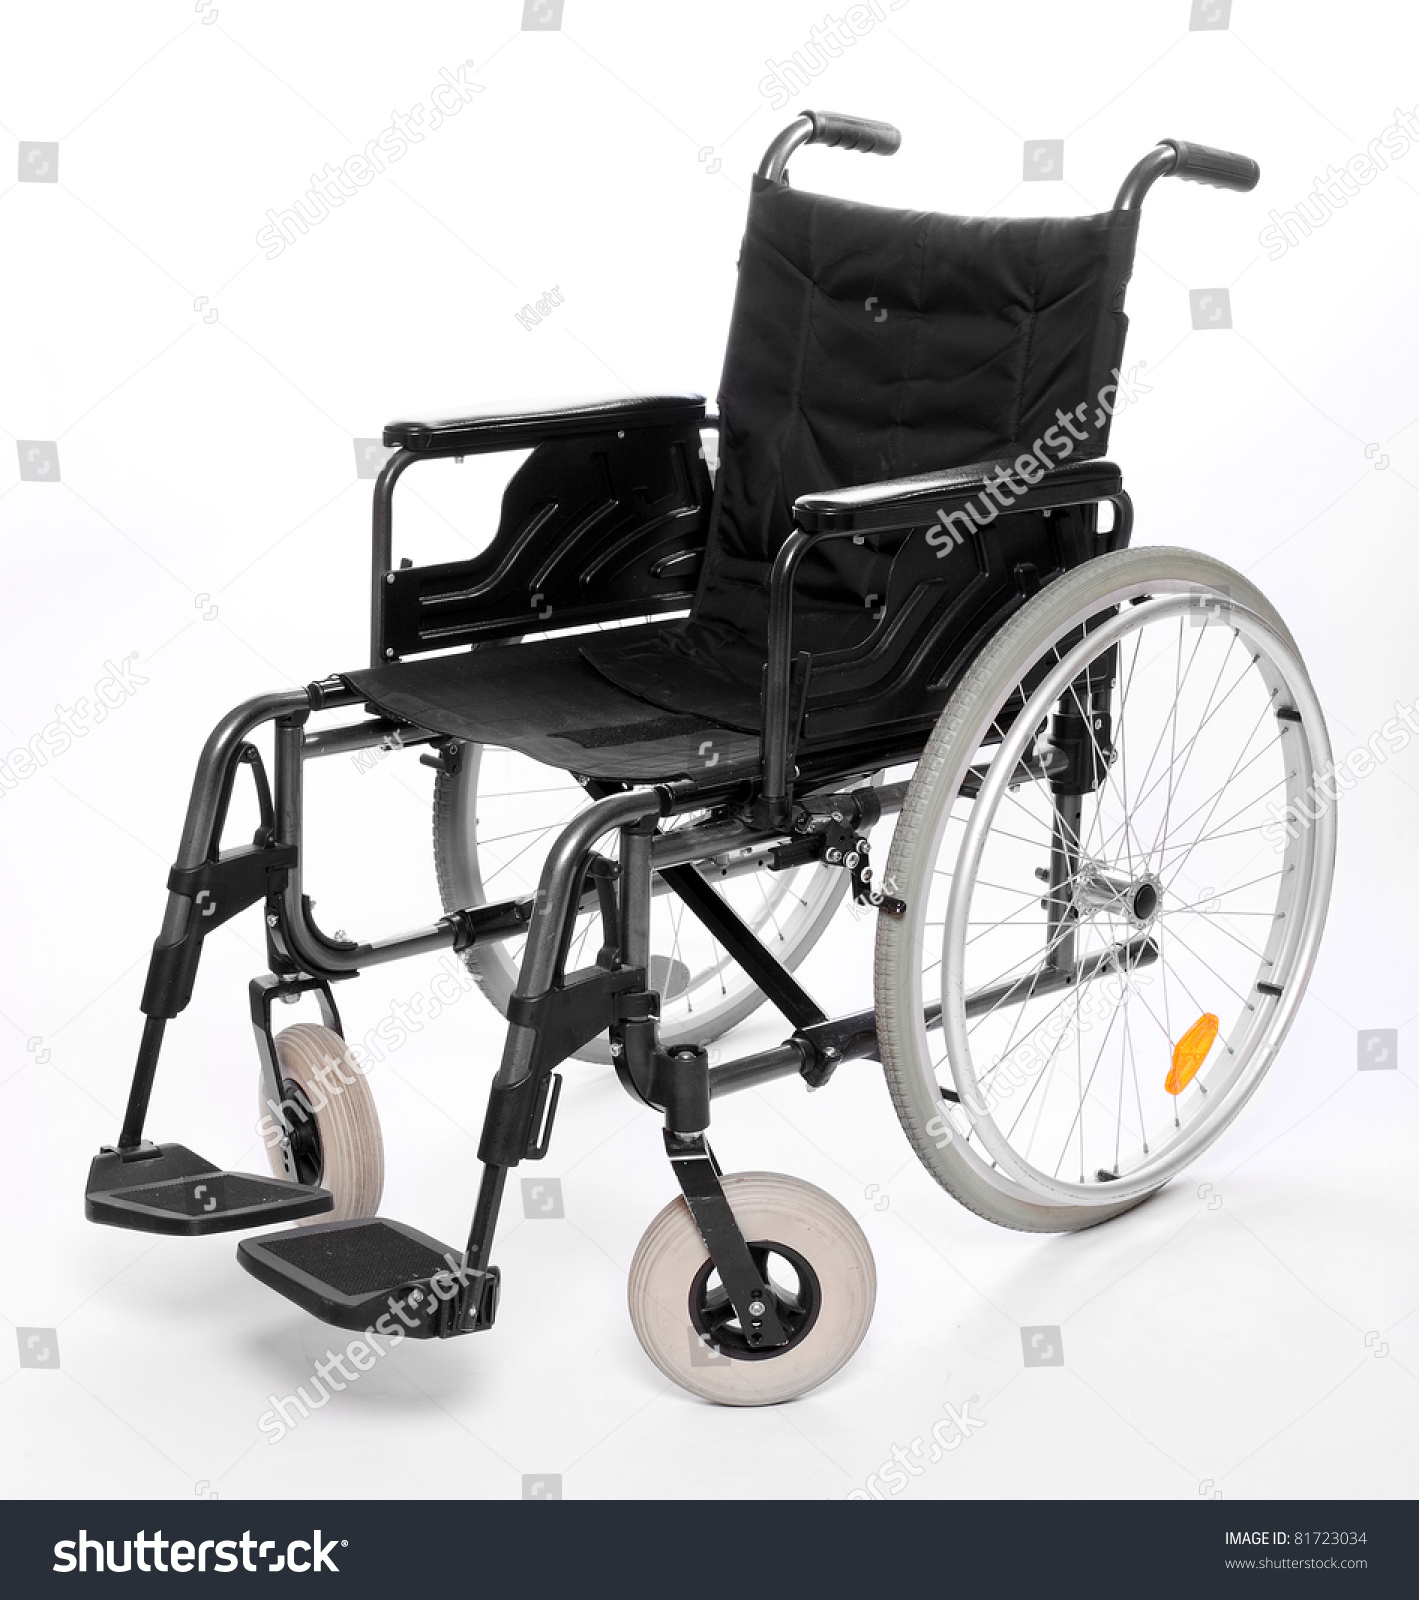 Vehicle for handicapped persons - invalid chair.   EZ Canvas